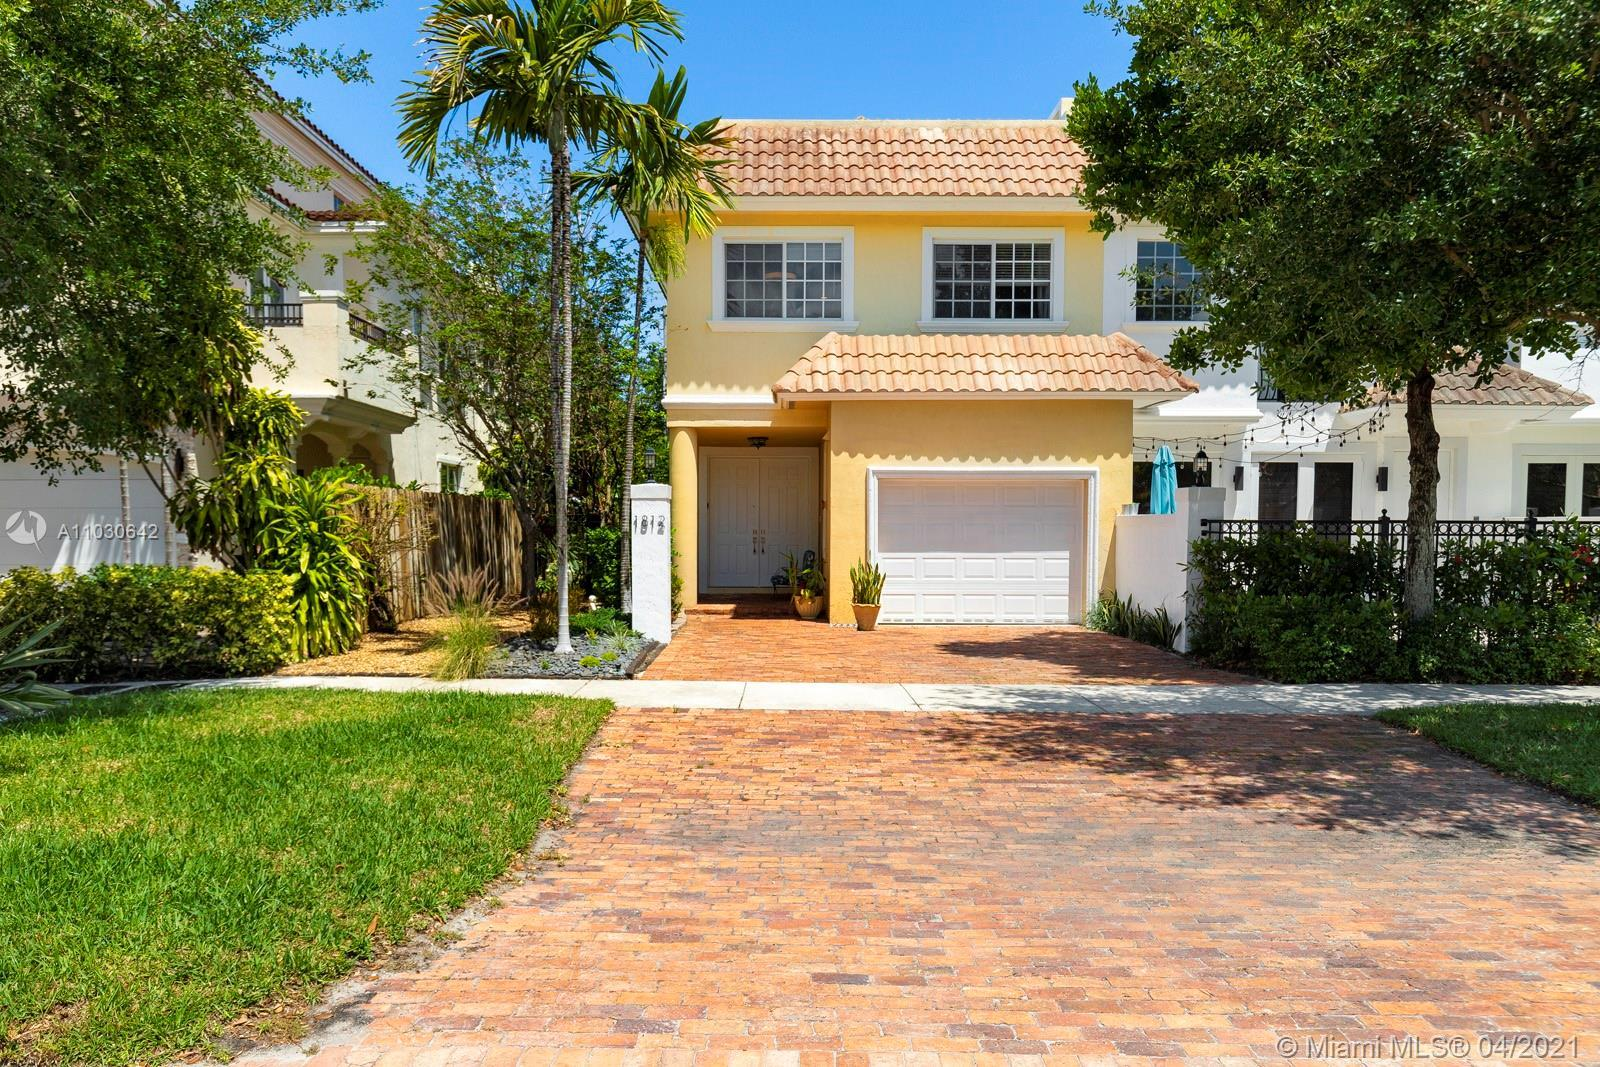 Fee Simple, No HOA, end-unit, tri-level townhome in sought after Coral Ridge. 3 large bedrooms, 3.5